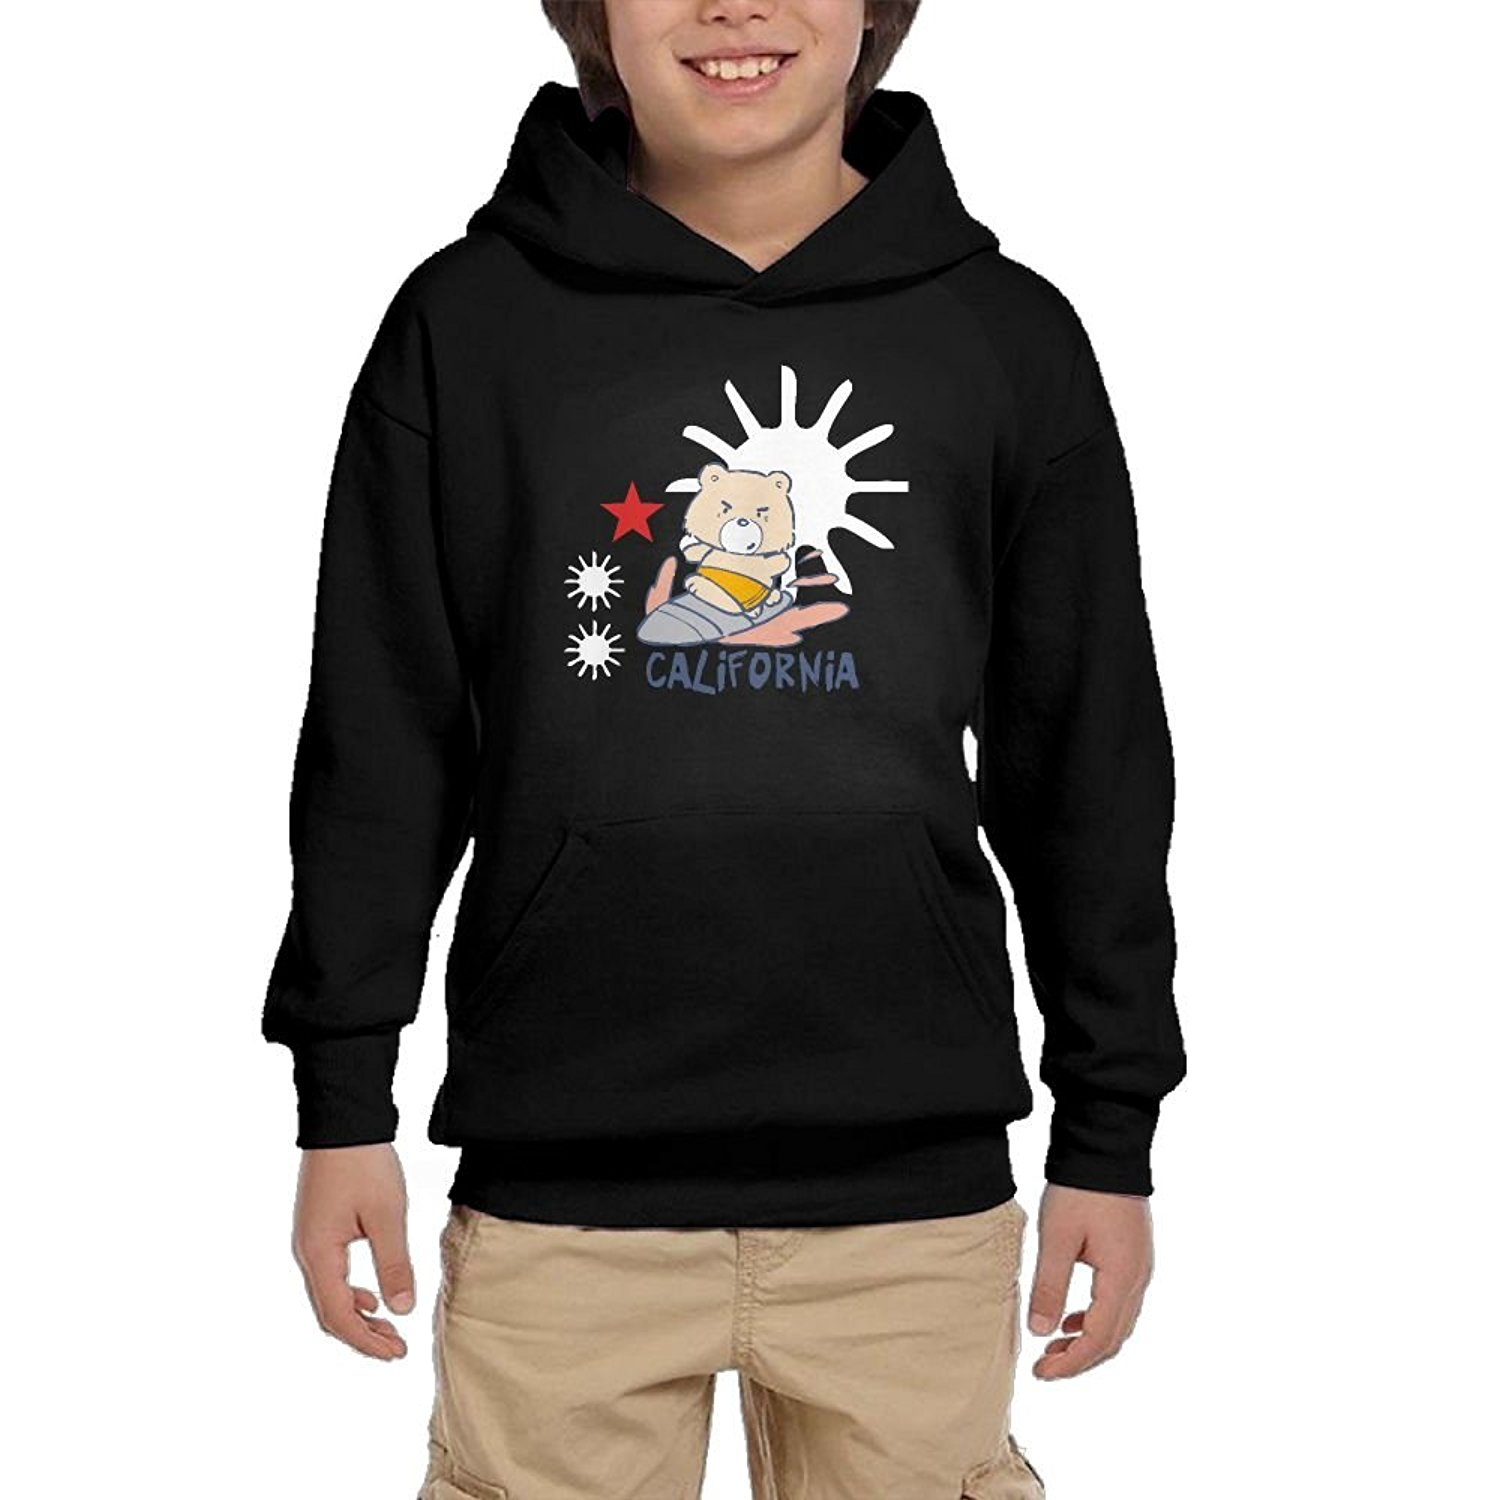 be0bf04865b15 Get Quotations · HUH HOODIES California Surf Bear Youth Casual Pullover Hoodies  Sweatshirts With Pocket